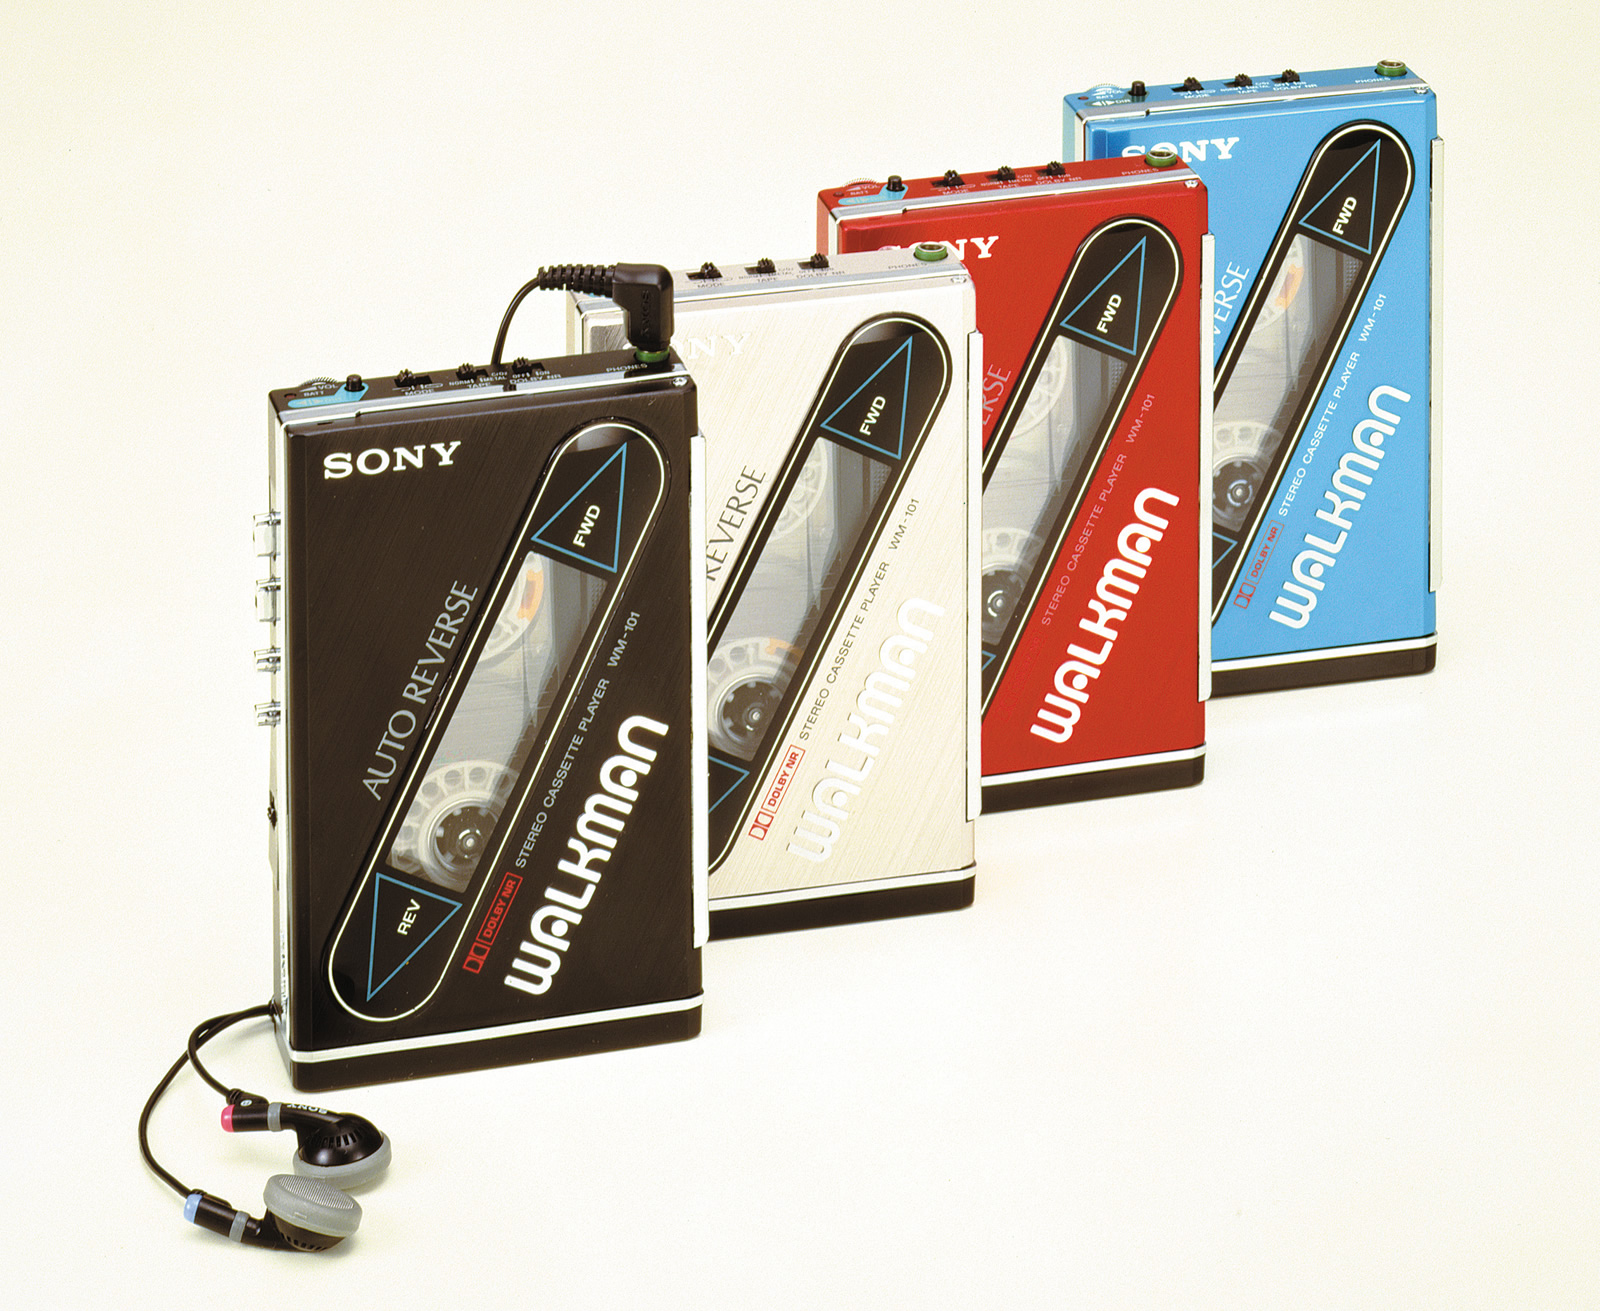 The History Of Walkman 35 Years Iconic Music Players Verge Wiring Diagram 1984 Onwards All Mini Series With Single Instrument Pack Sony Wm 101 First Rechargeable Batteries Slimmer Than Its Predecessors